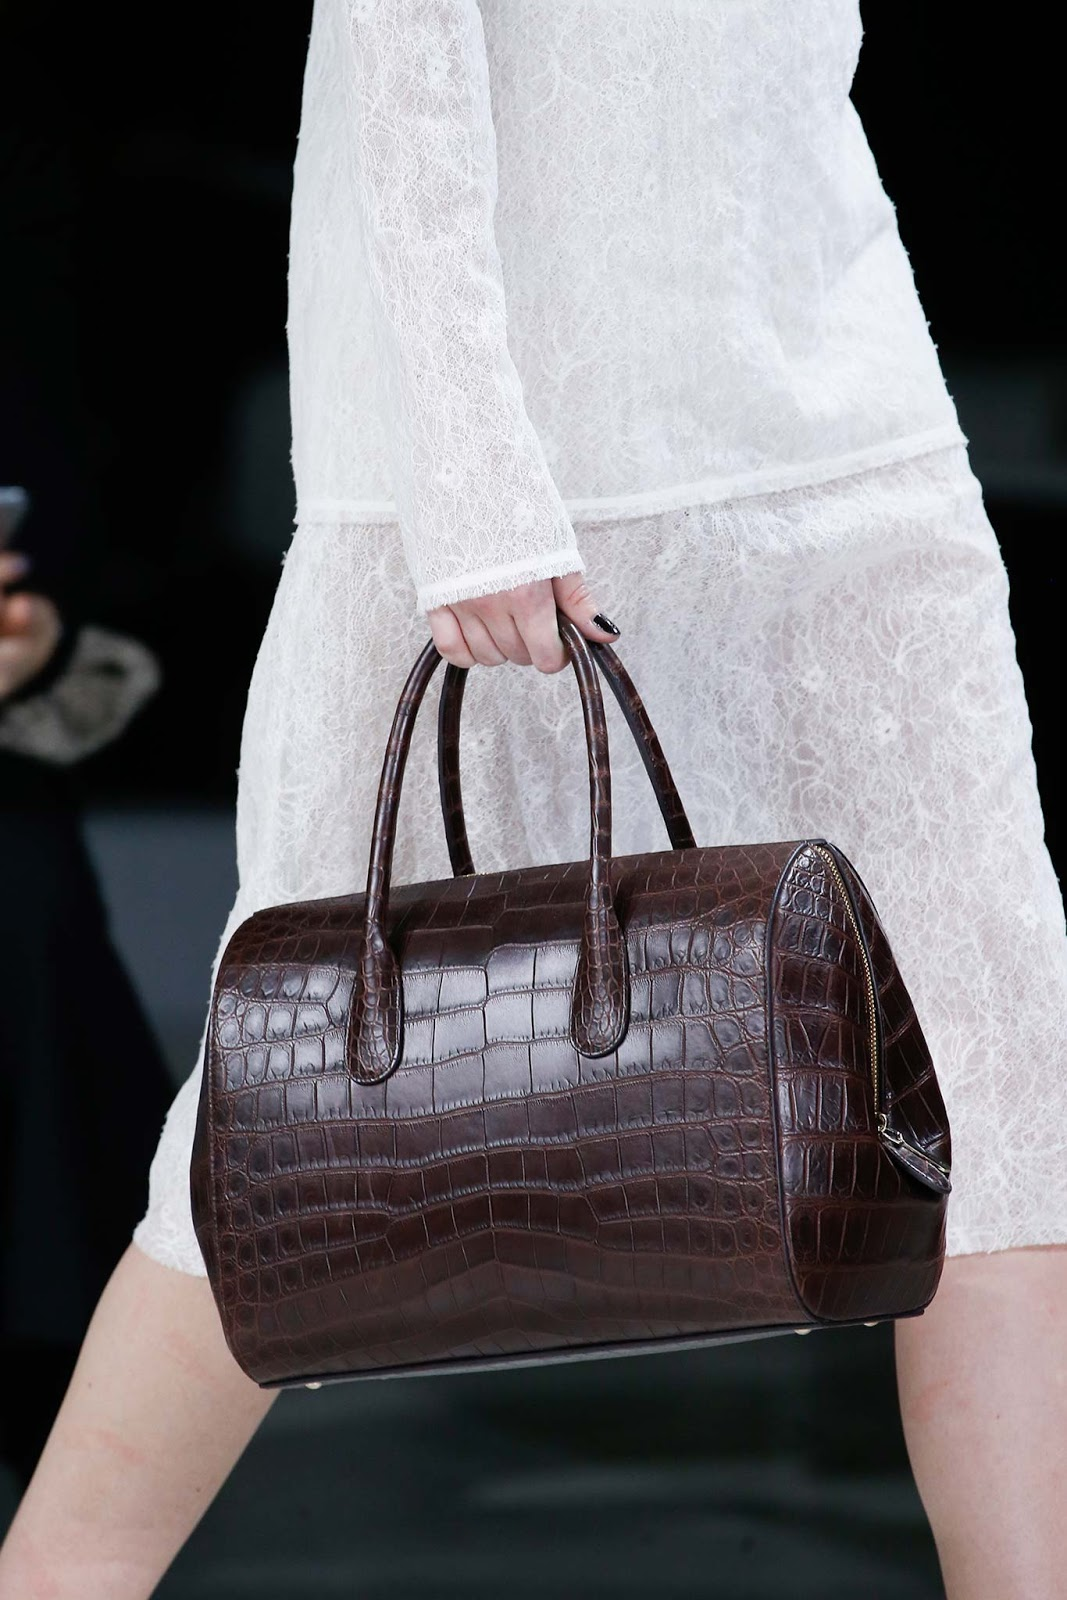 Fall 2015 accessories trend report / best bags / investment bags / crocodile accessories trend at Nina Ricci Fall/Winter 2015 via fashionedbylove.co.uk, british fashion blog